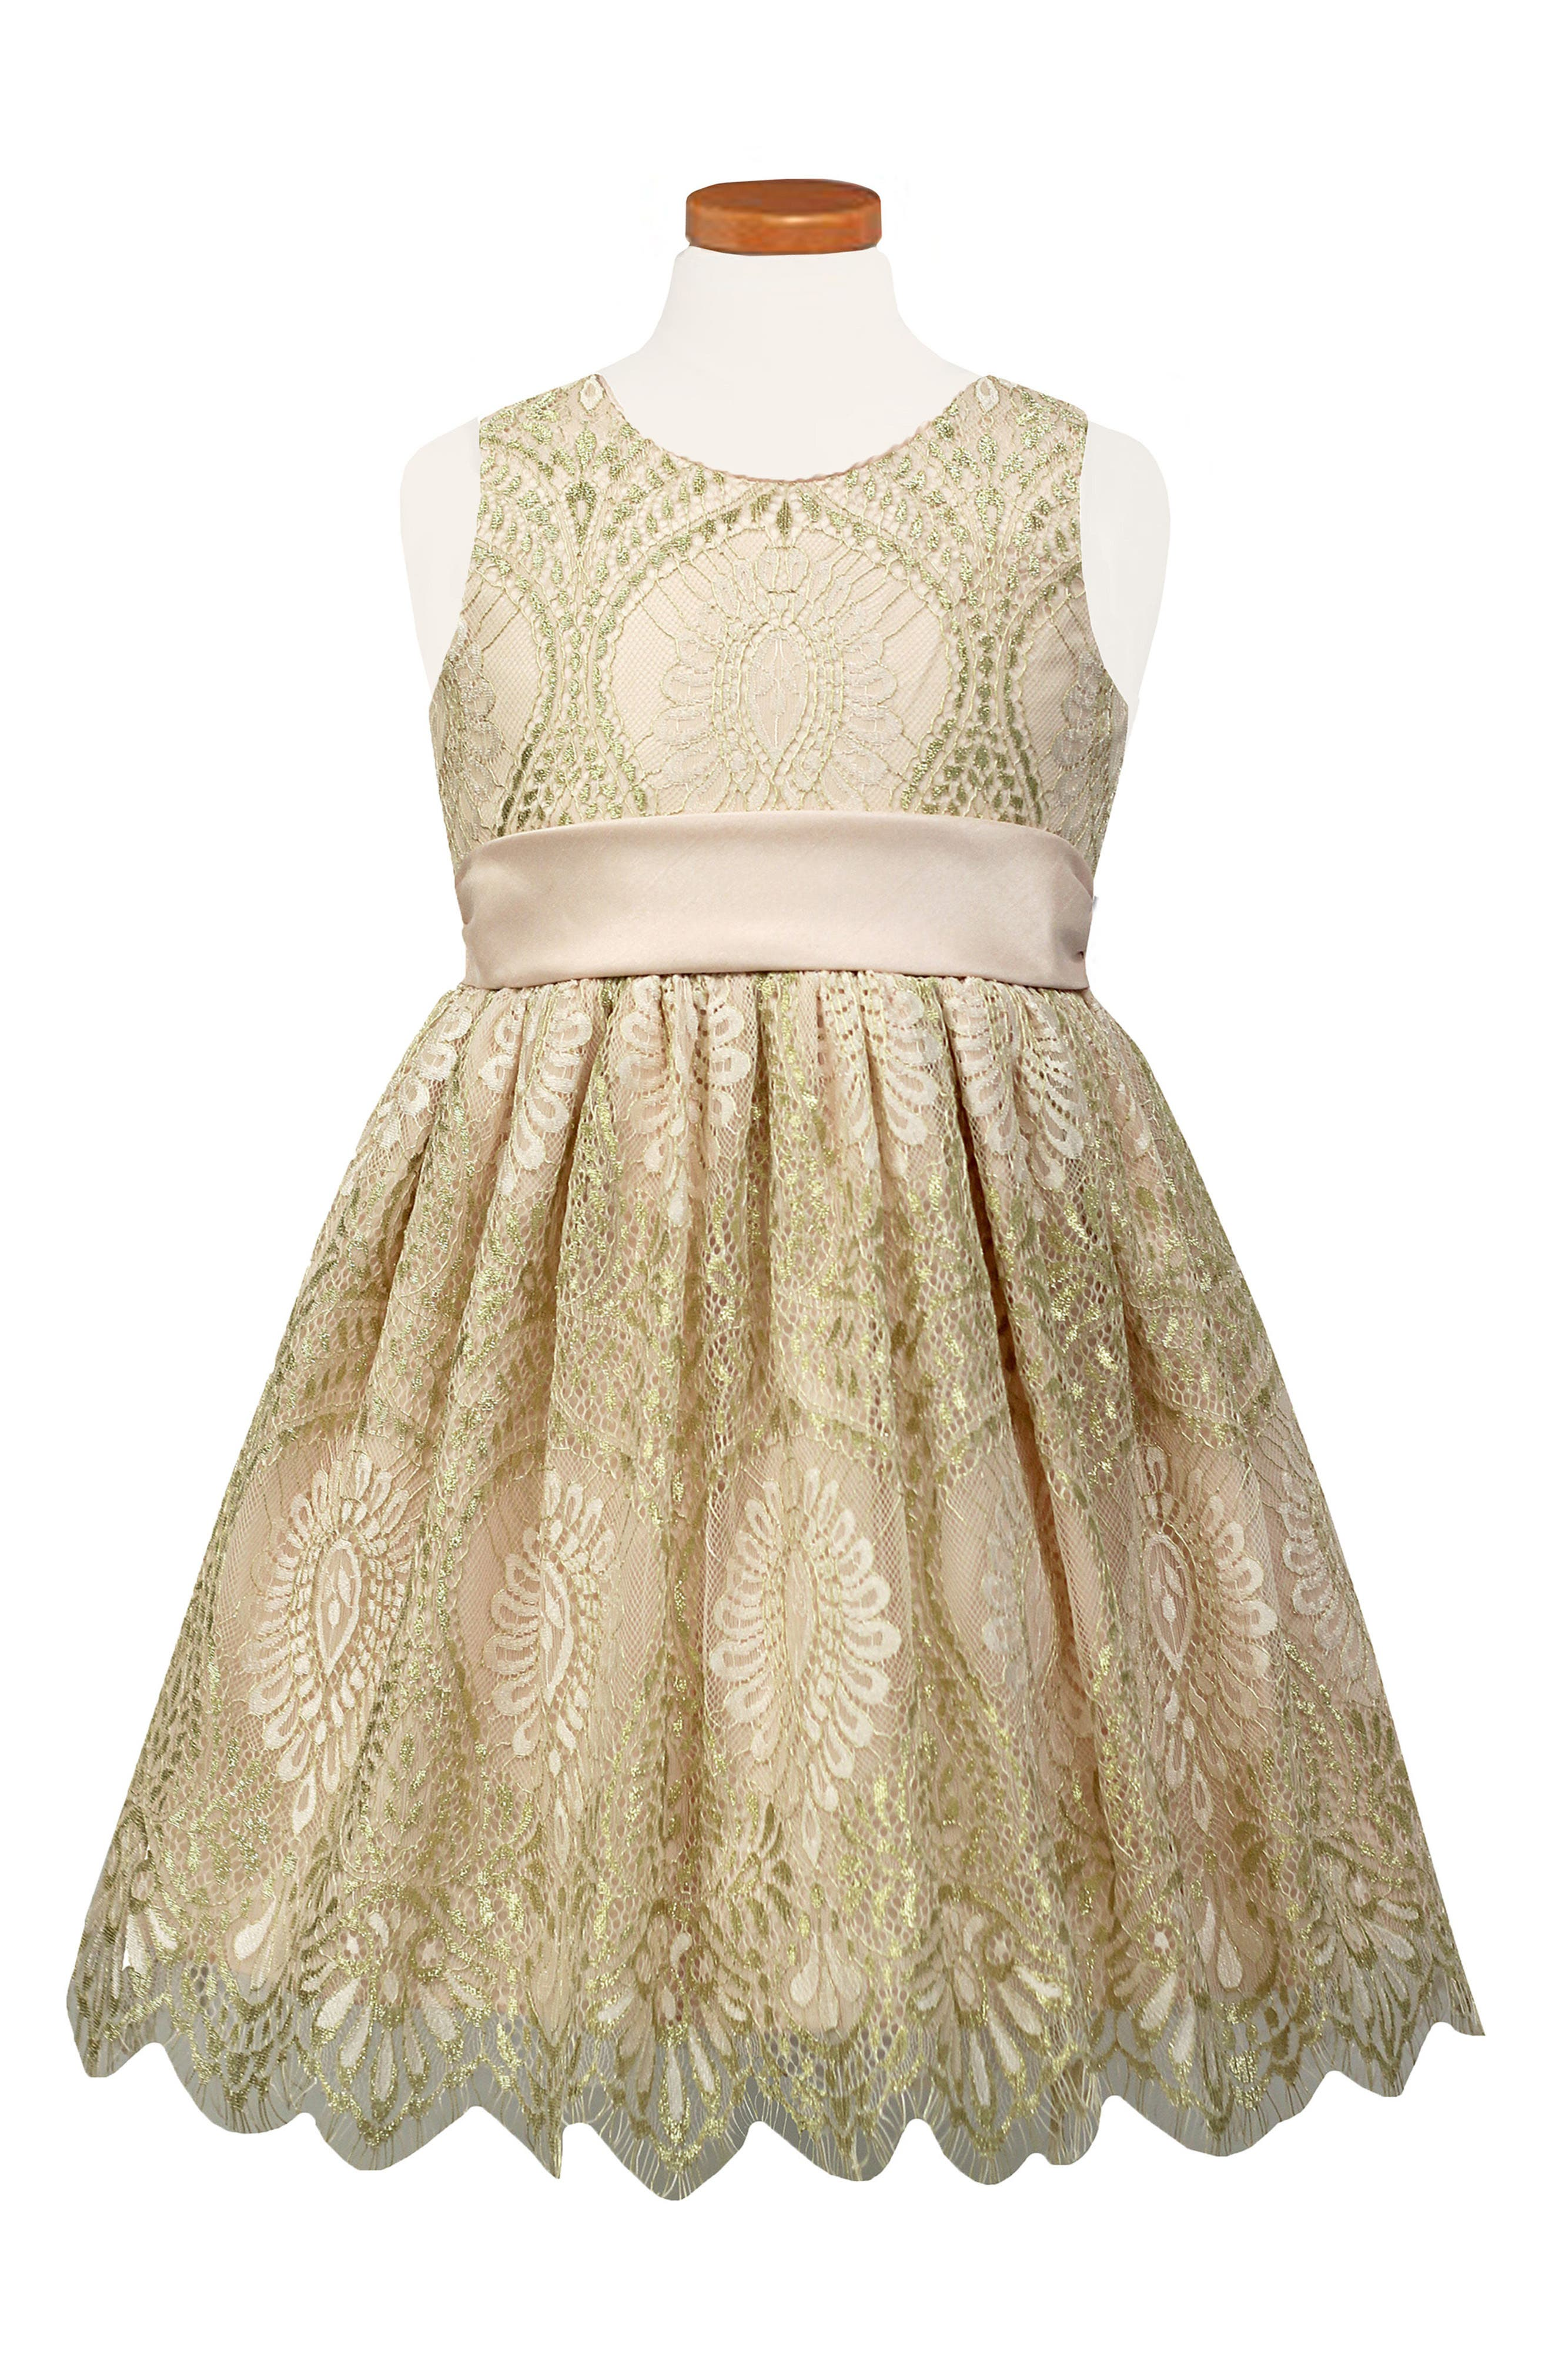 SORBET,                             Lace Fit & Flare Dress,                             Main thumbnail 1, color,                             PINK